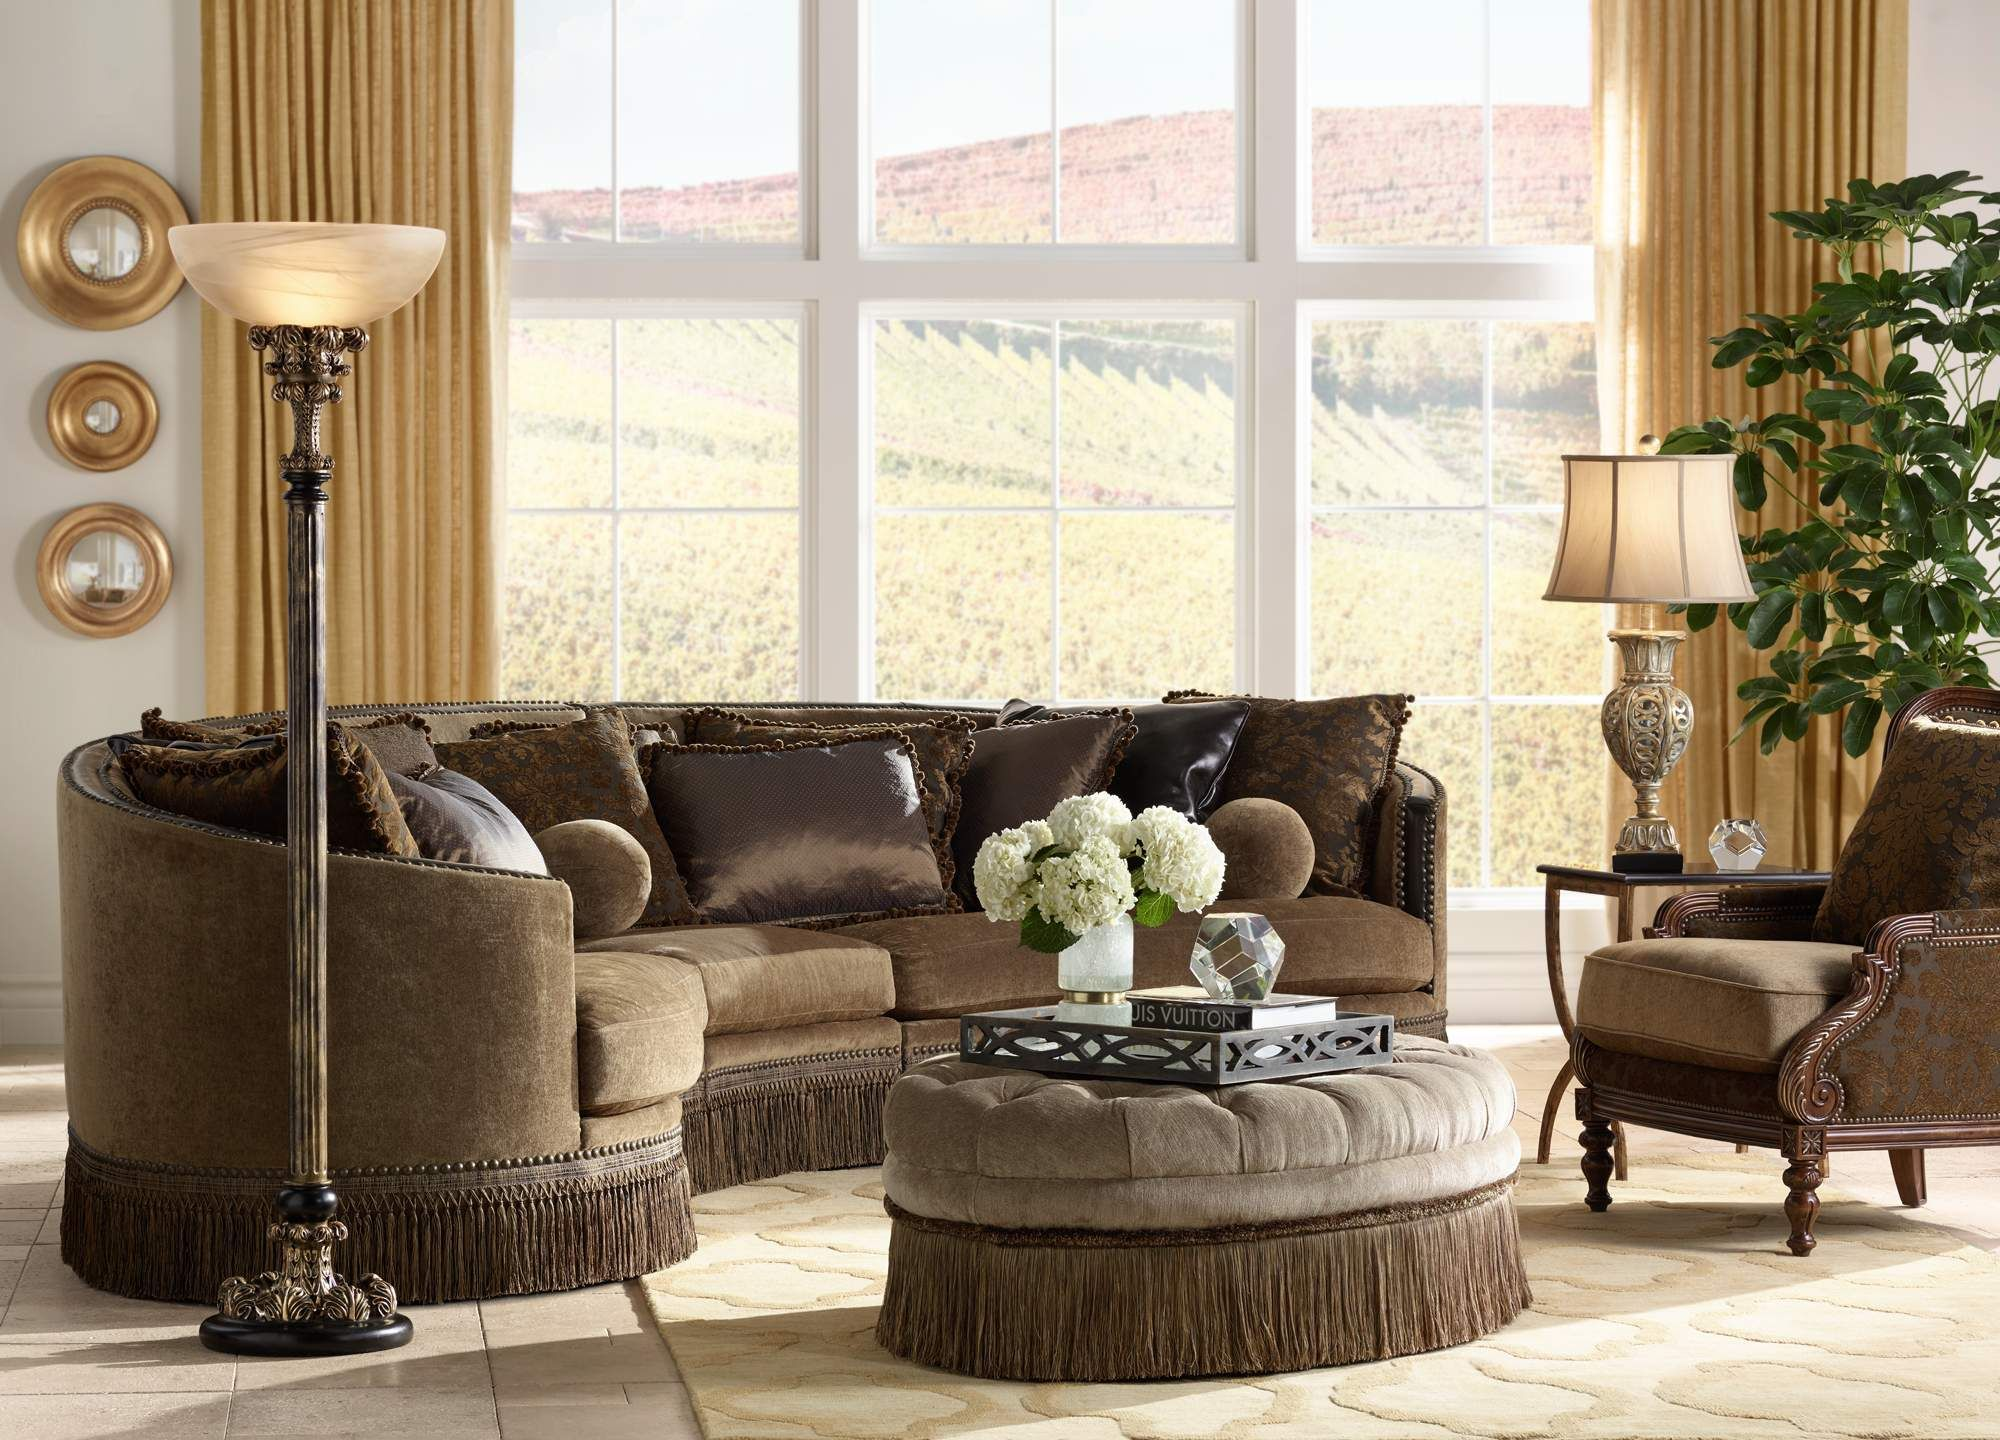 flooring rustic living sofas amazing spaces small tv tile affordable sectional lamp ideas room wood couch edison stand industrial